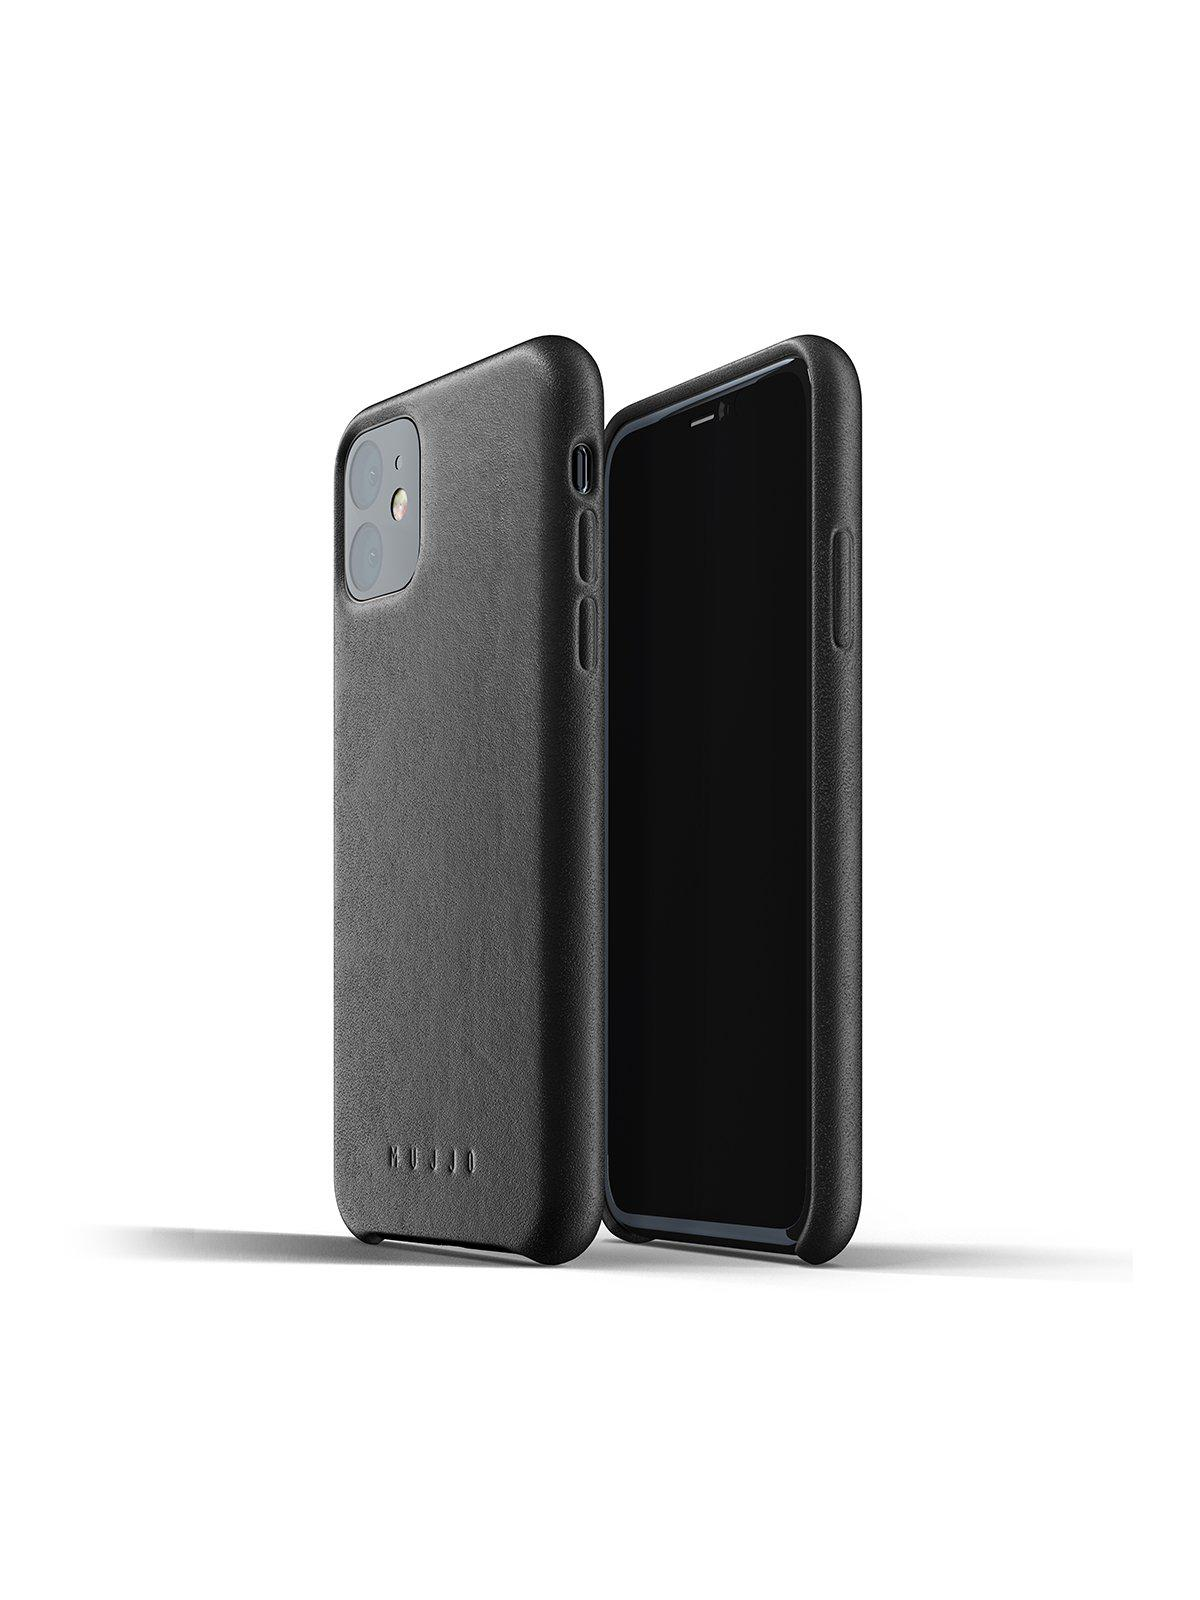 Mujjo Full Leather Case for iPhone 11 Black - MORE by Morello Indonesia